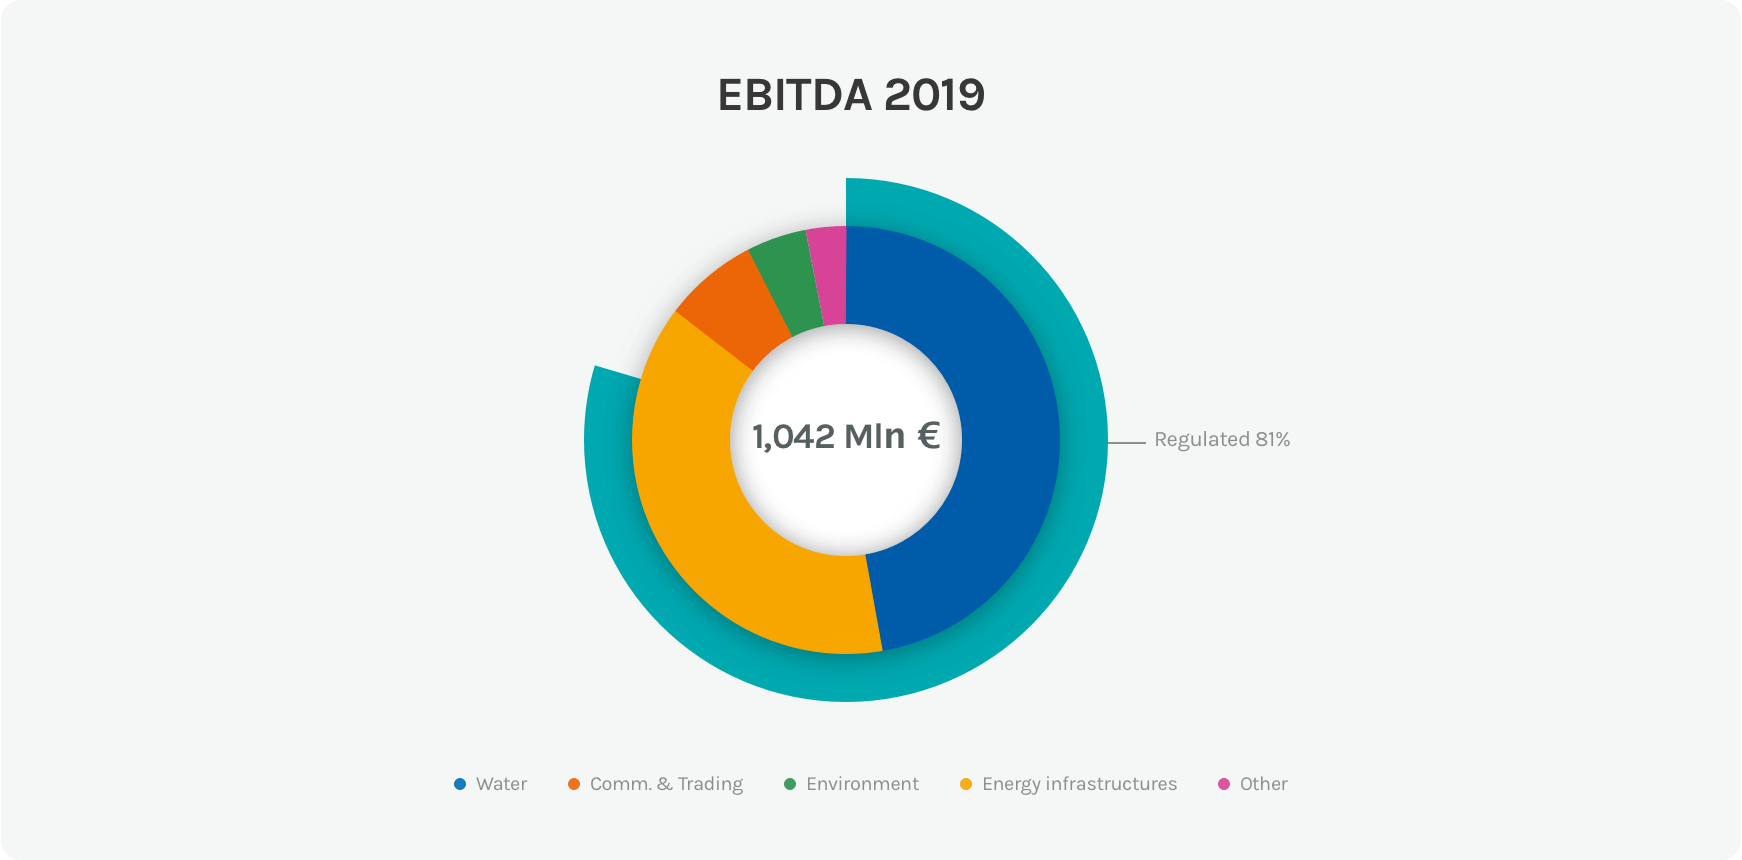 Diagram of the EBITDA of the Acea Group in 2019